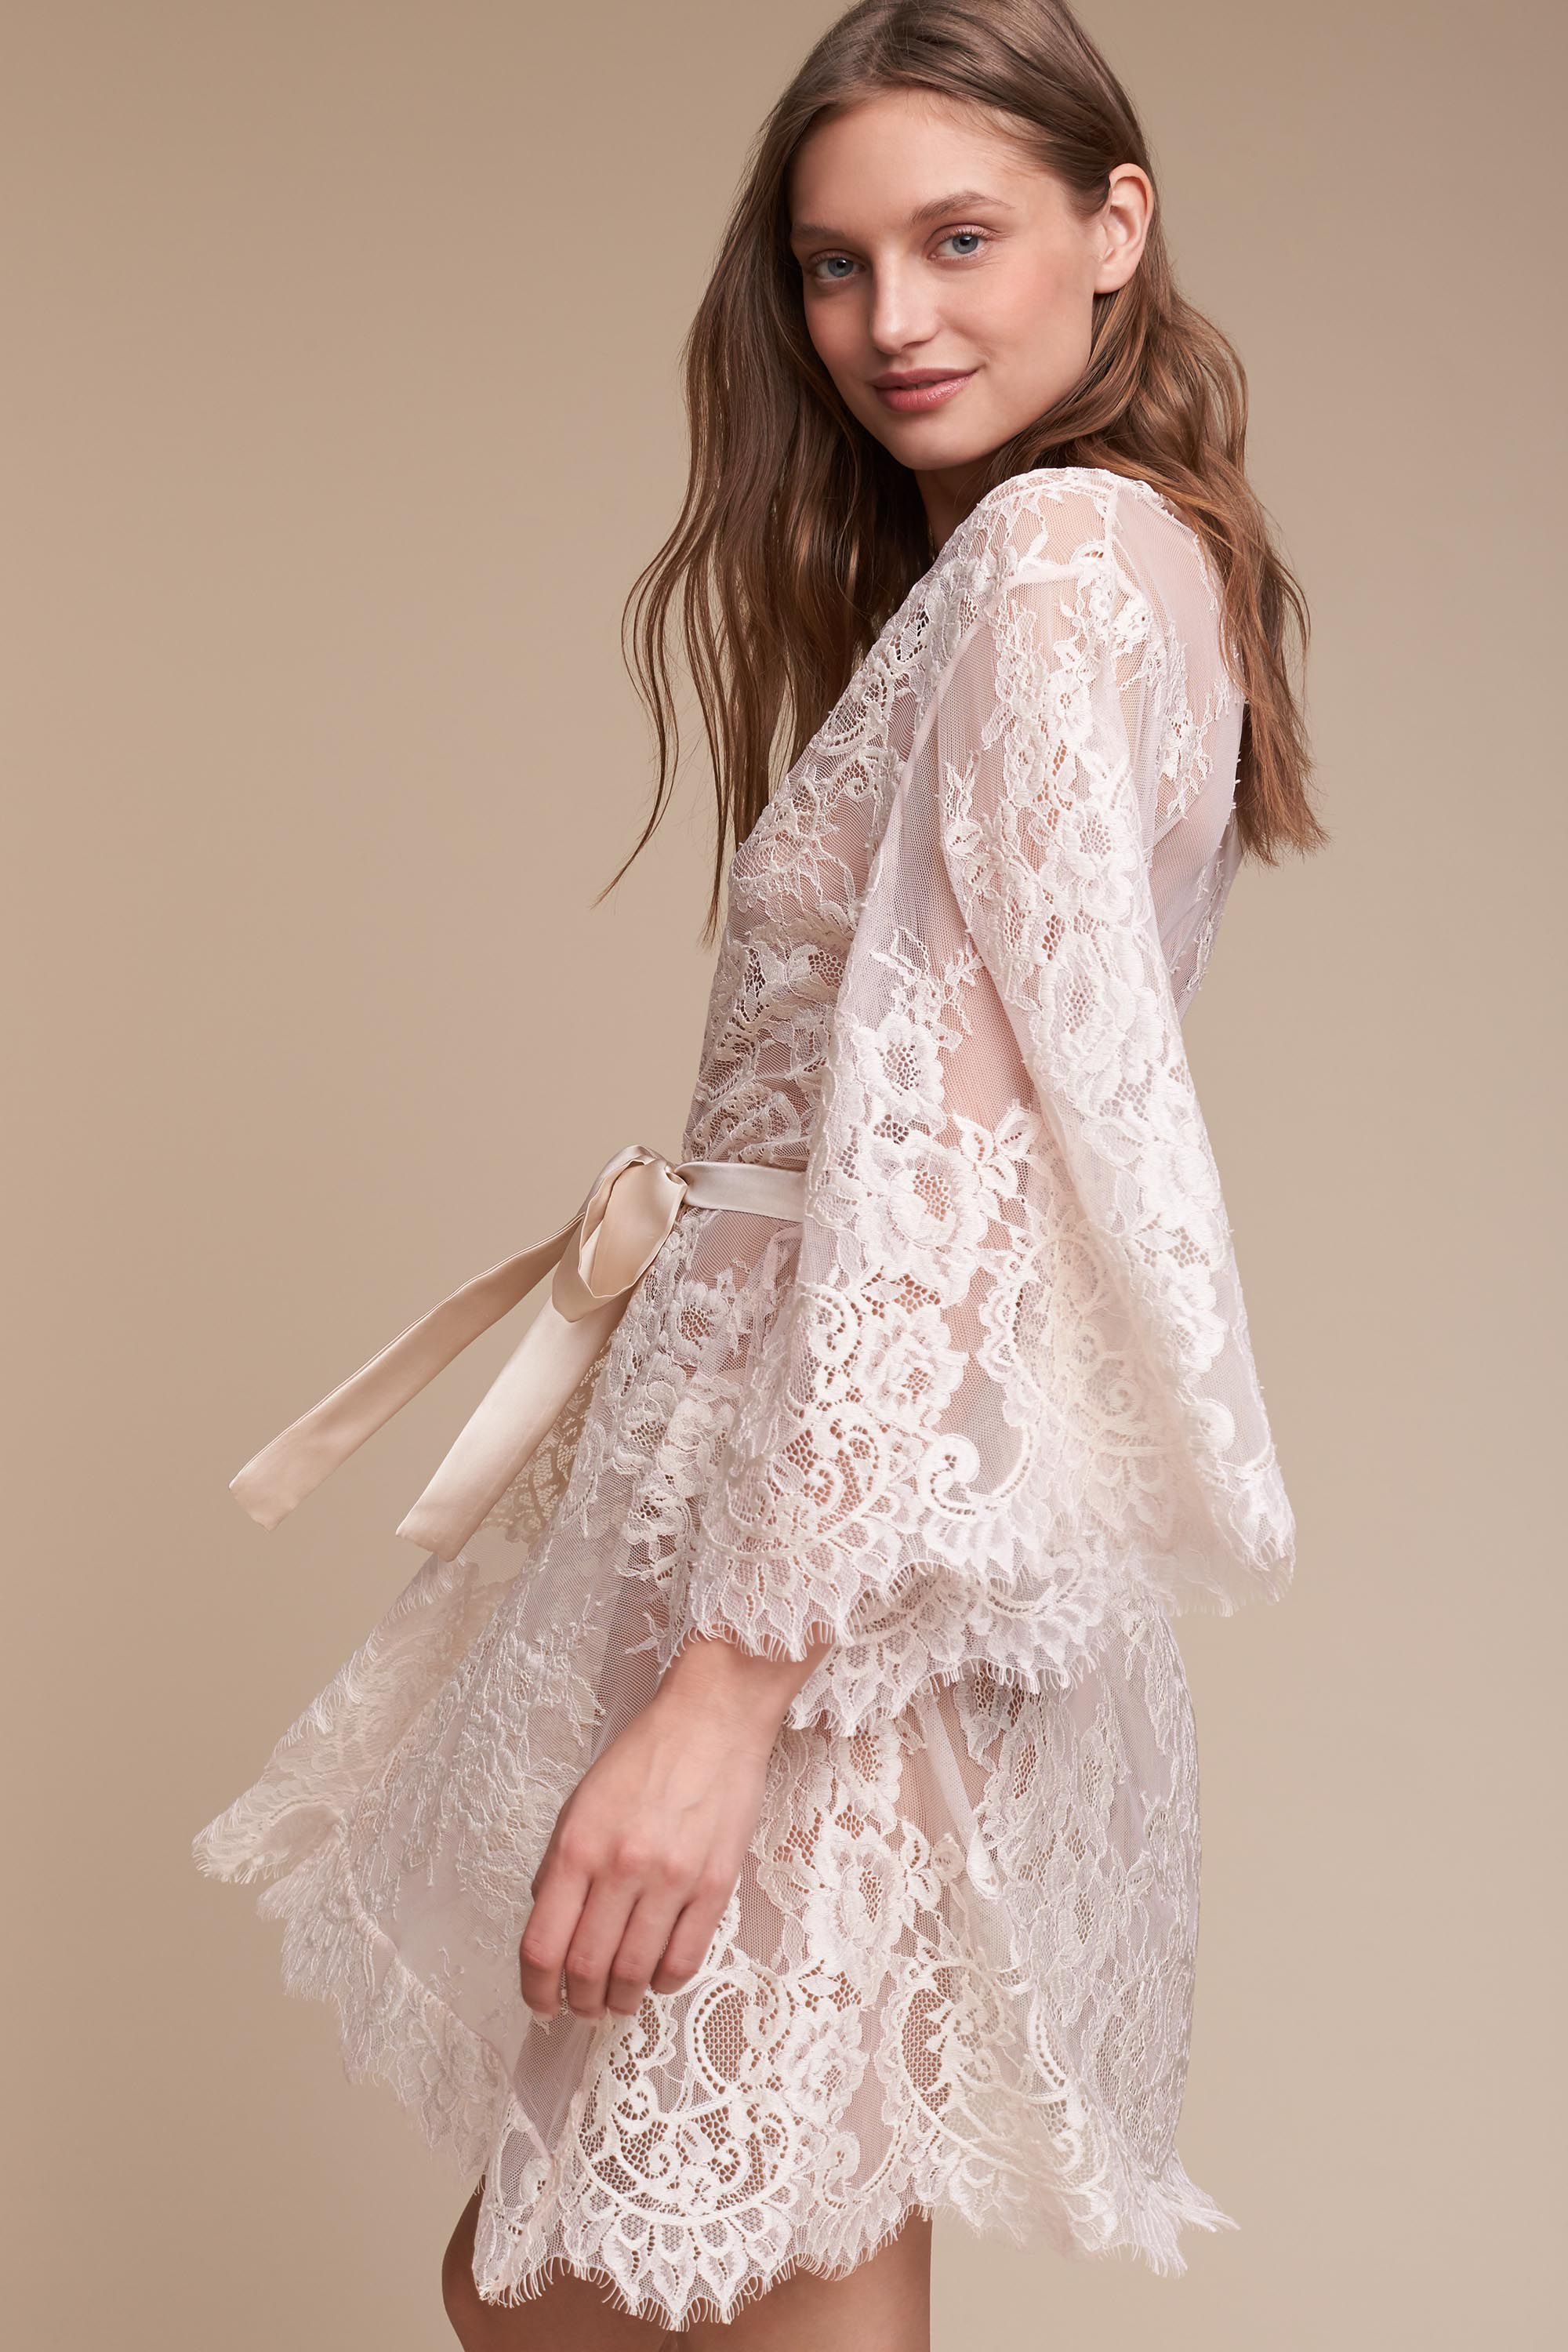 Wedding Bride Robe prita robe in bride bhldn blush bhldn